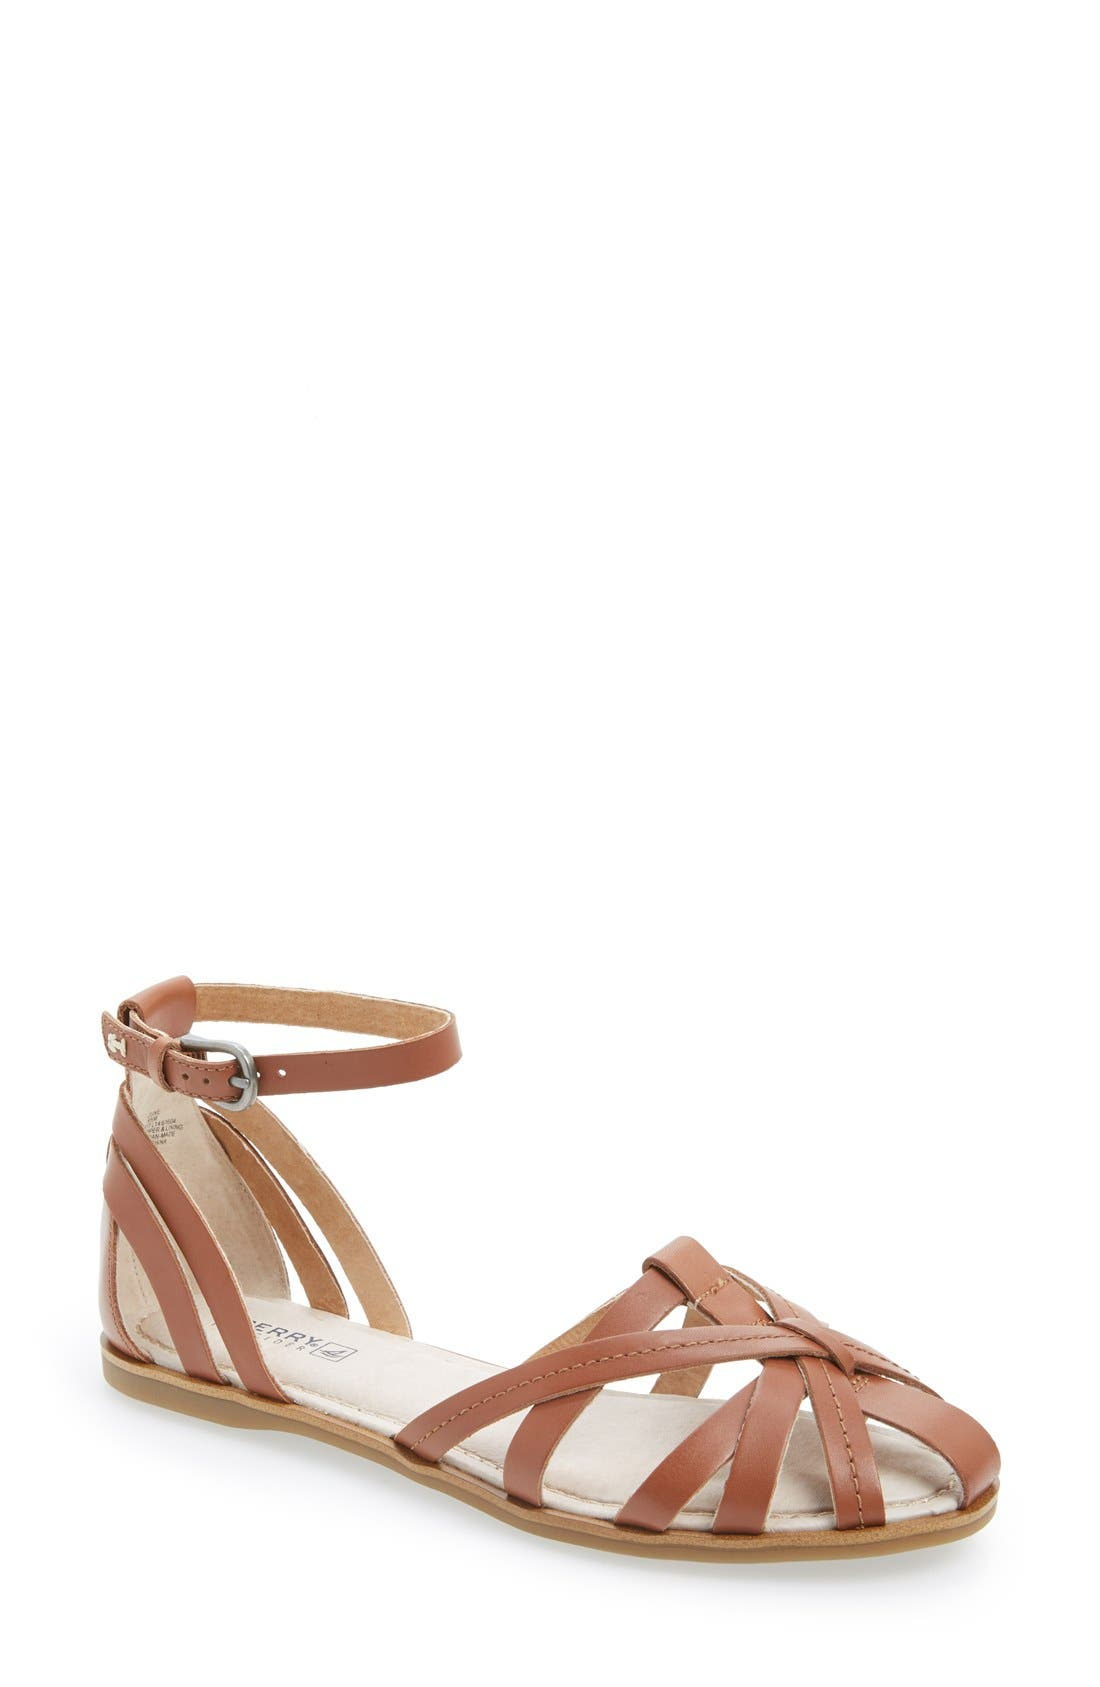 Alternate Image 1 Selected - Sperry 'June' Leather Ankle Strap Sandal (Women)